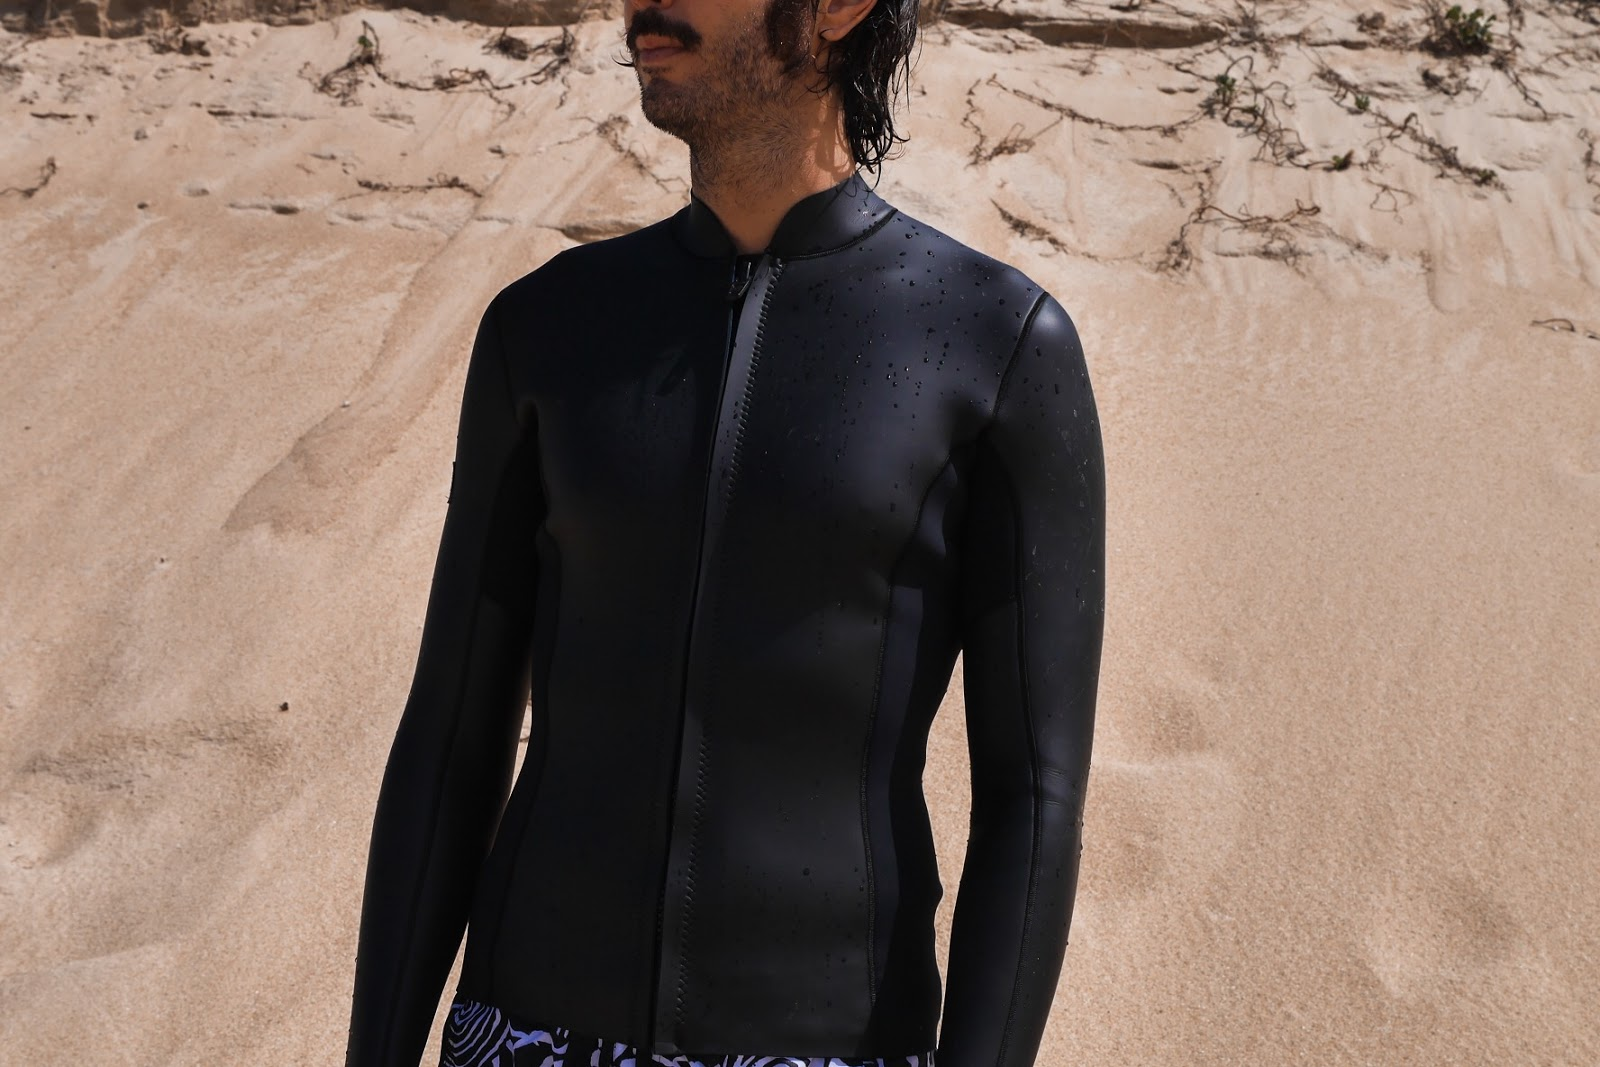 Neoprene Surfin Estate, Wetsuit Jacket, hand made in Capbreton